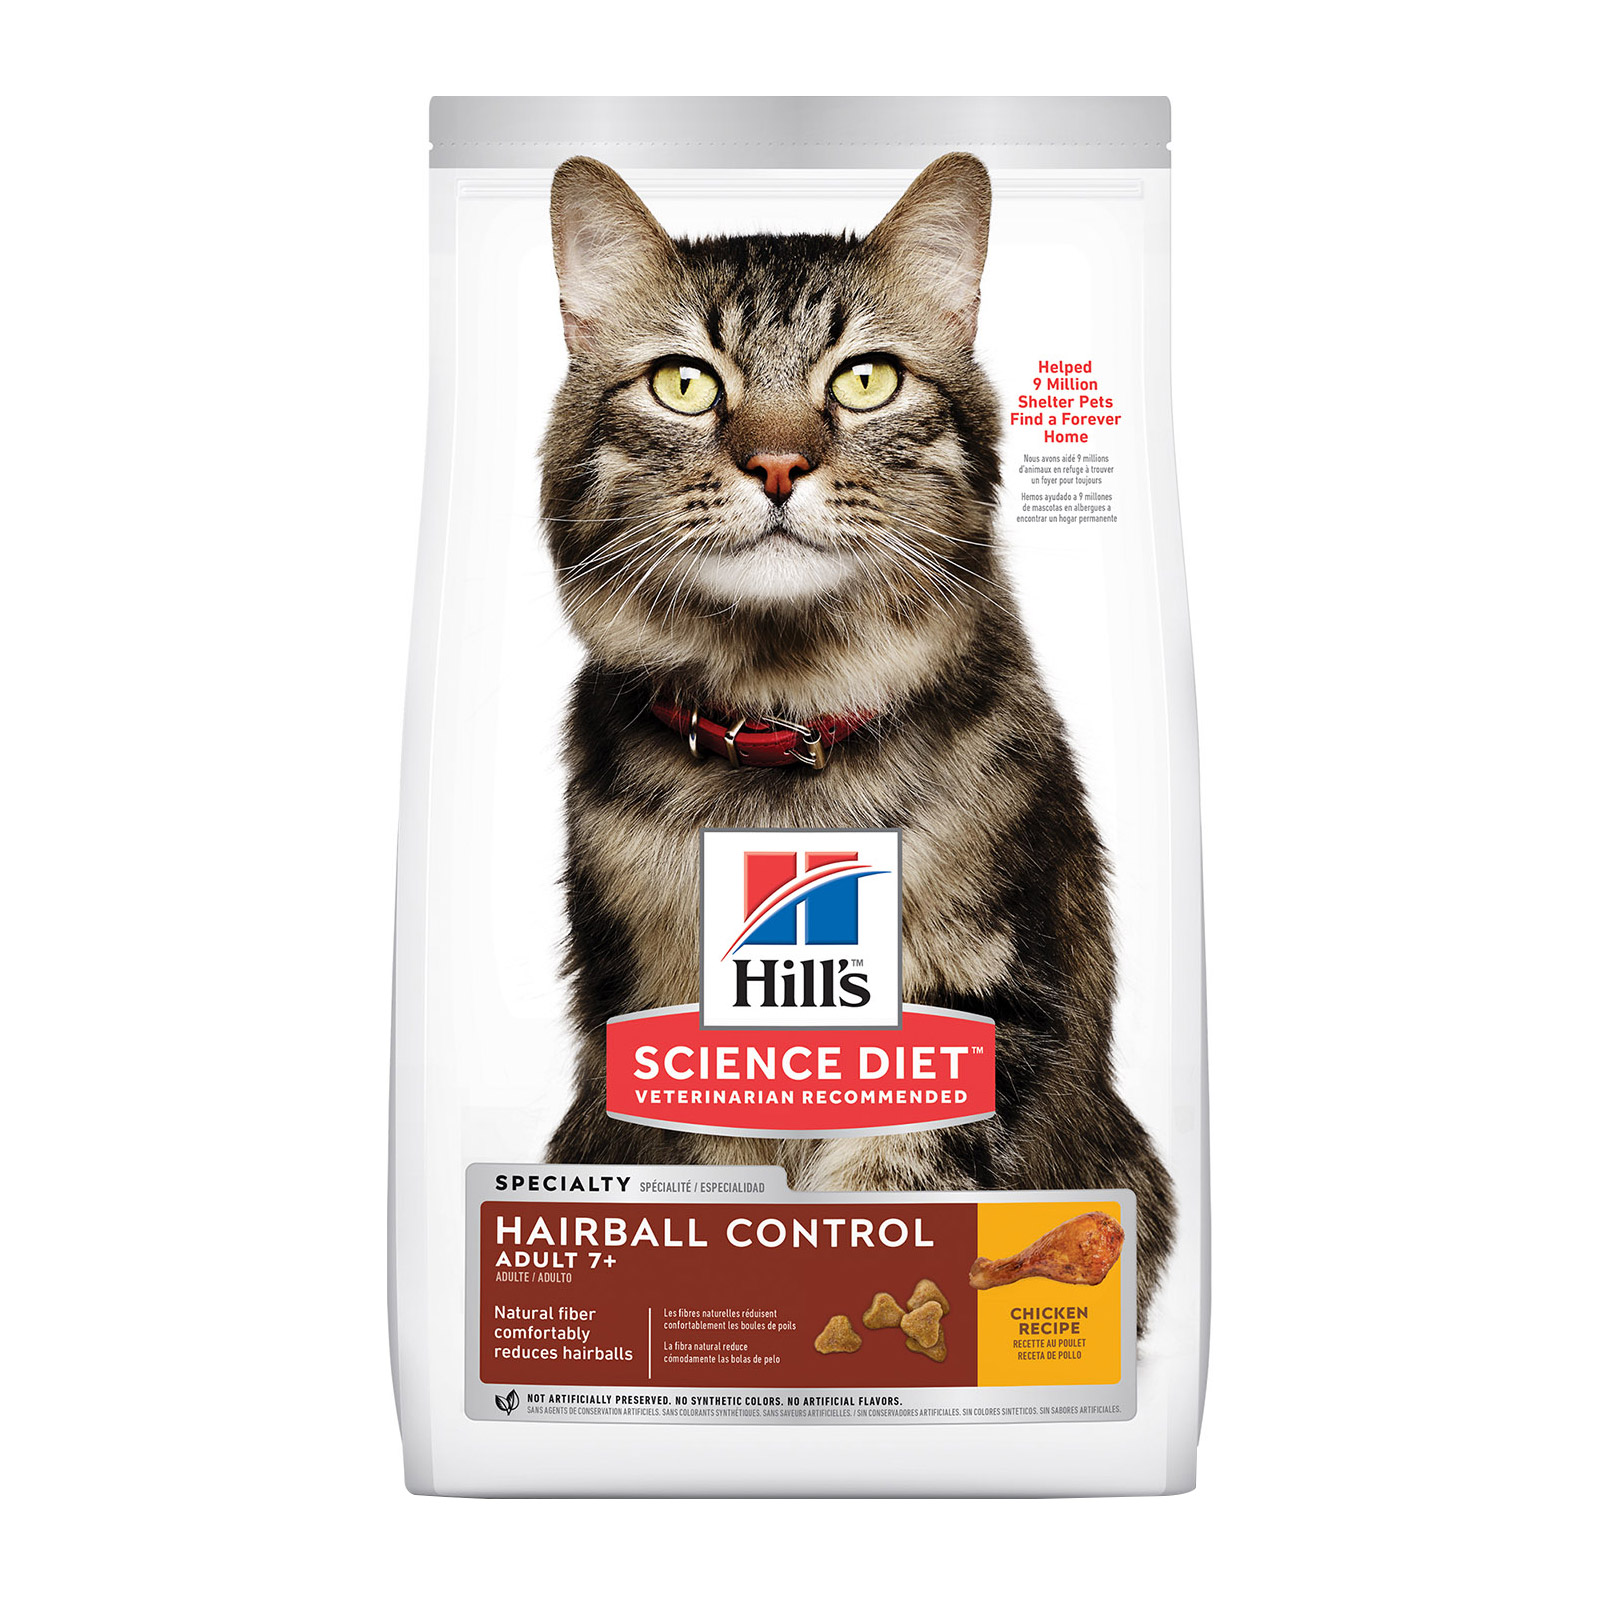 Hill's Science Diet Adult 7+ Hairball Control Chicken Senior Dry Cat Food